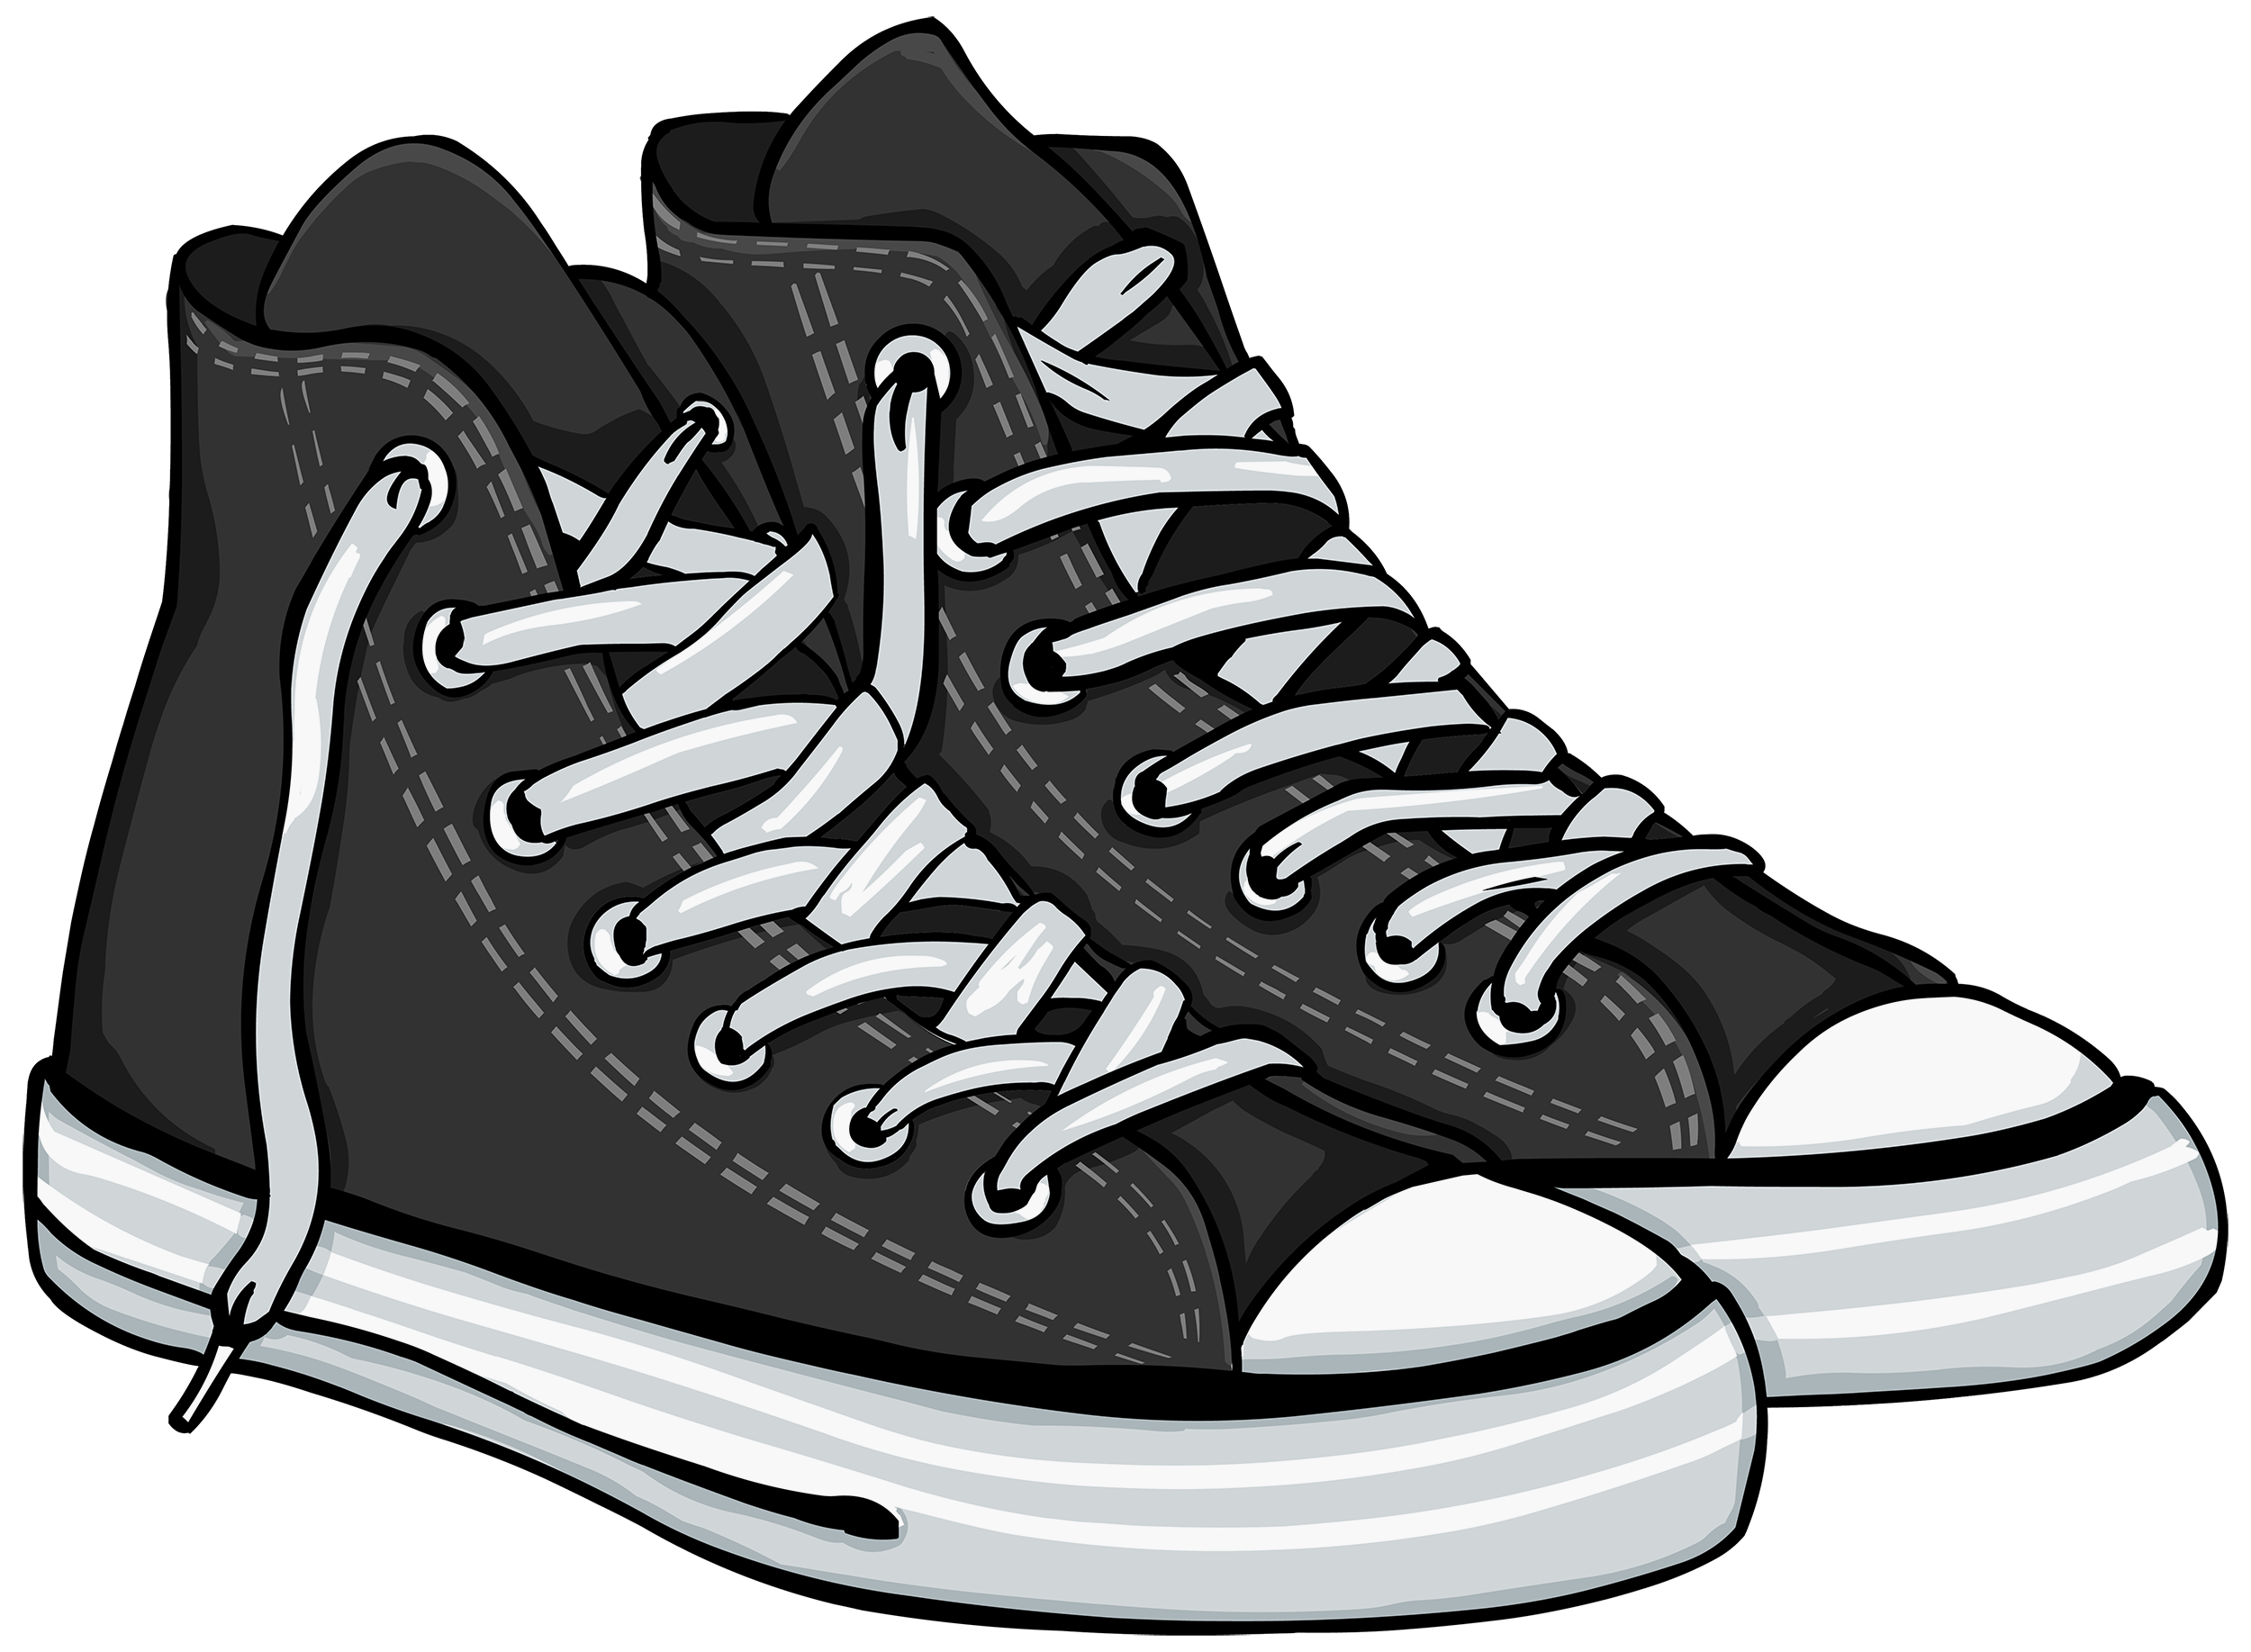 Shoes images clipart clip transparent stock Tennis shoes clipart black and white collection | Images in 2019 ... clip transparent stock